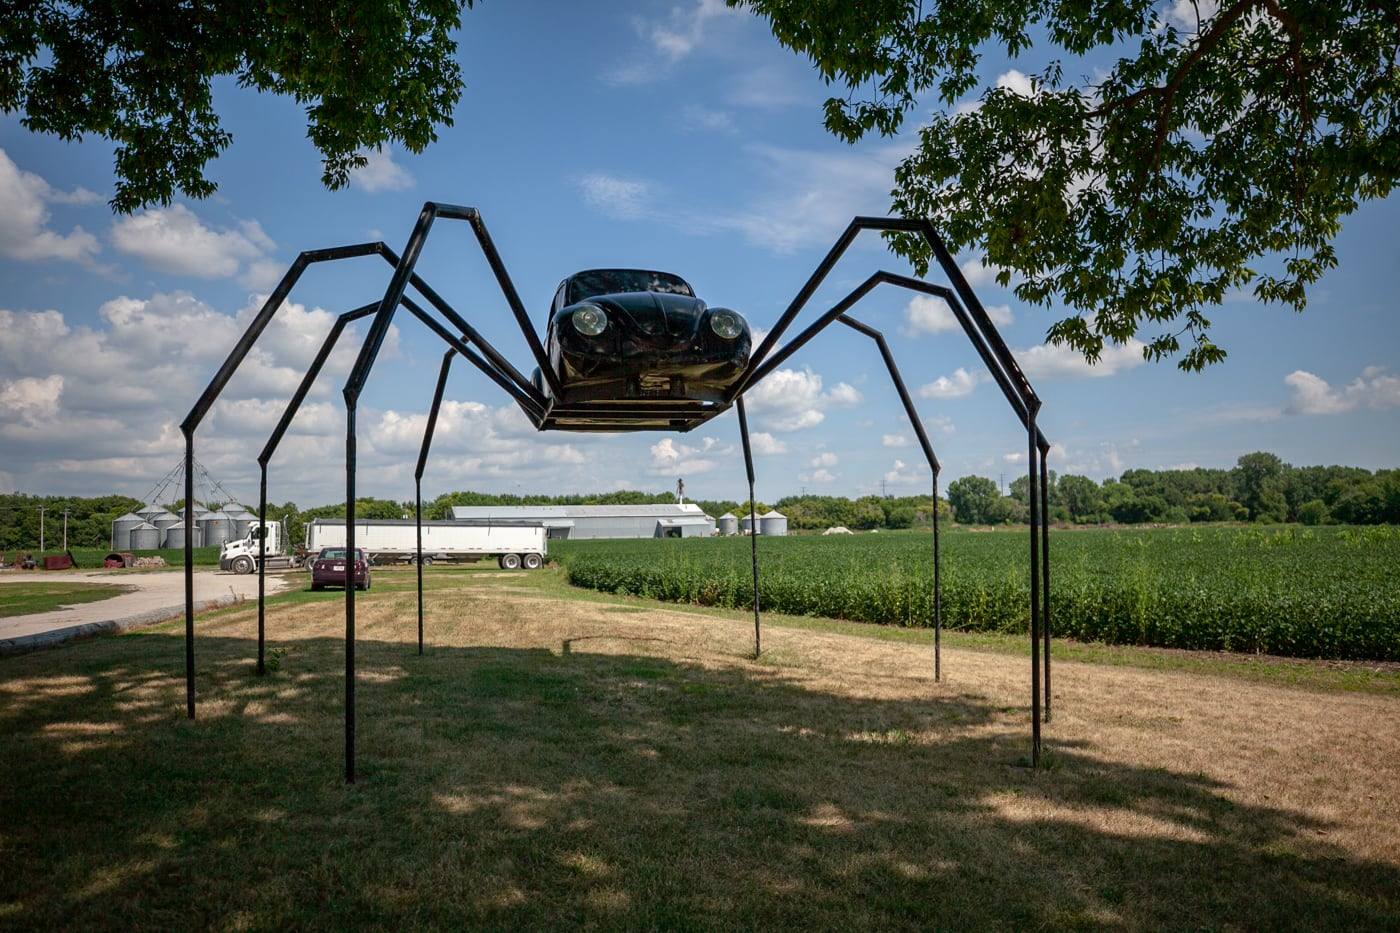 Giant Volkswagen beetle spider in Avoca, Iowa. | Iowa Roadside Attractions.